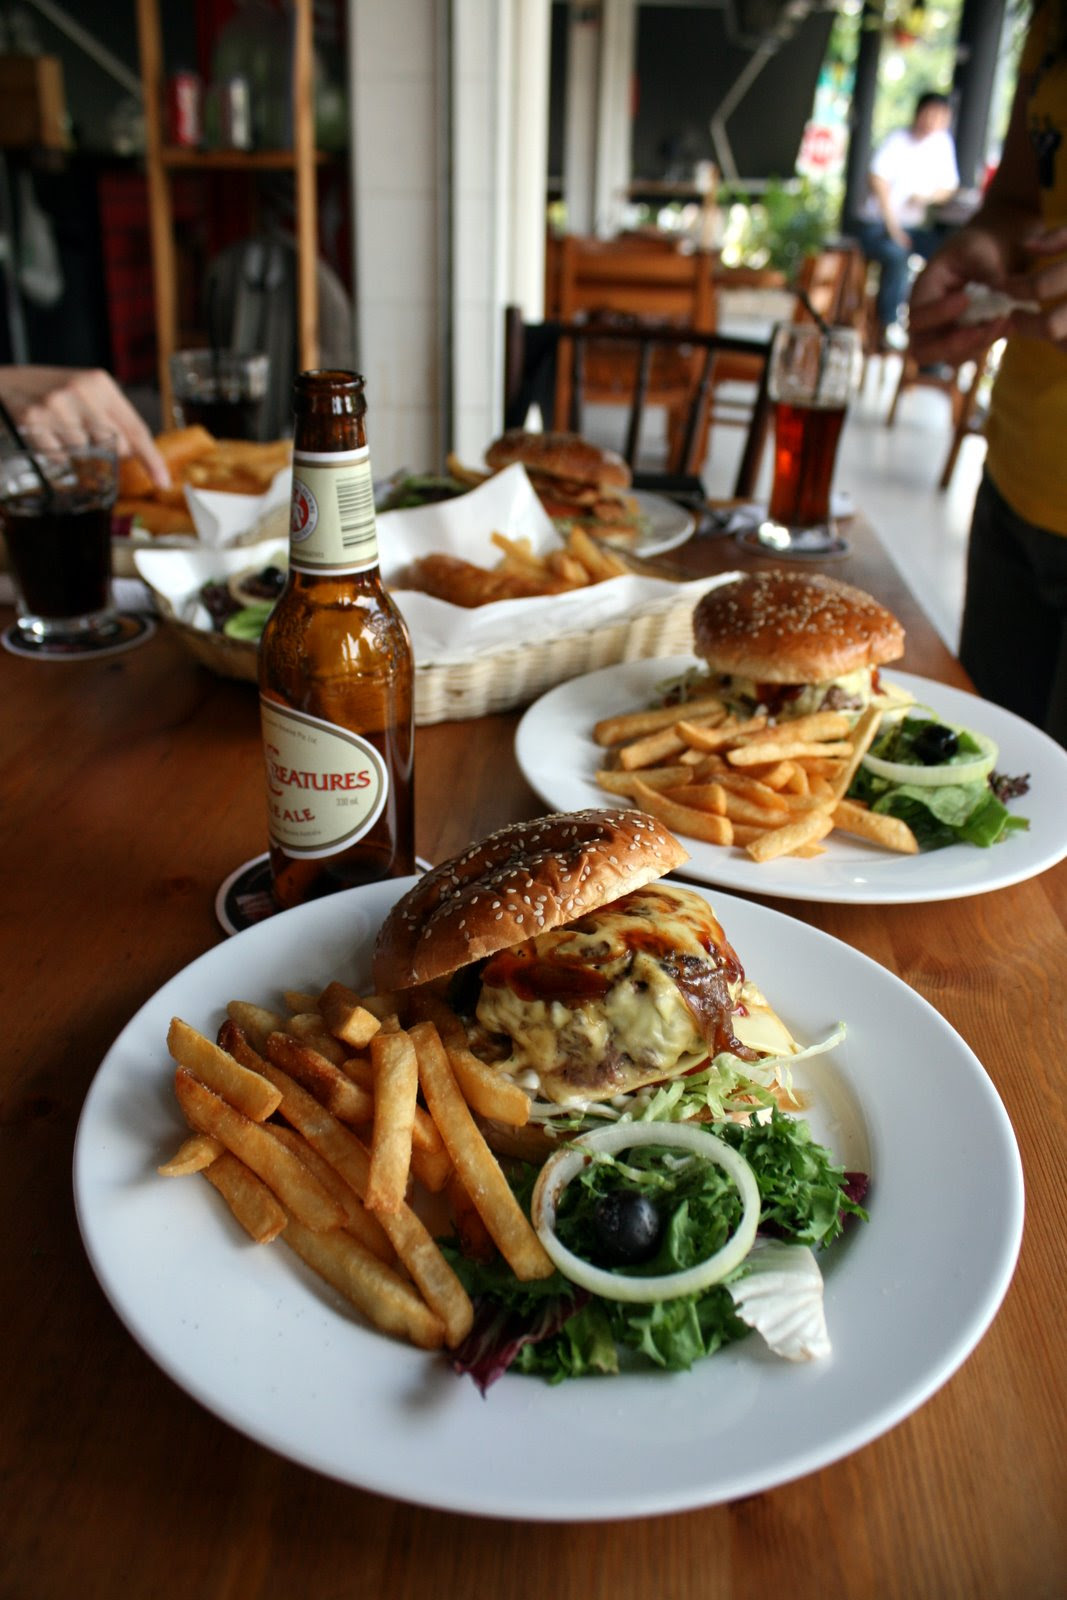 Cosy, laid-back atmosphere with beer and burgers